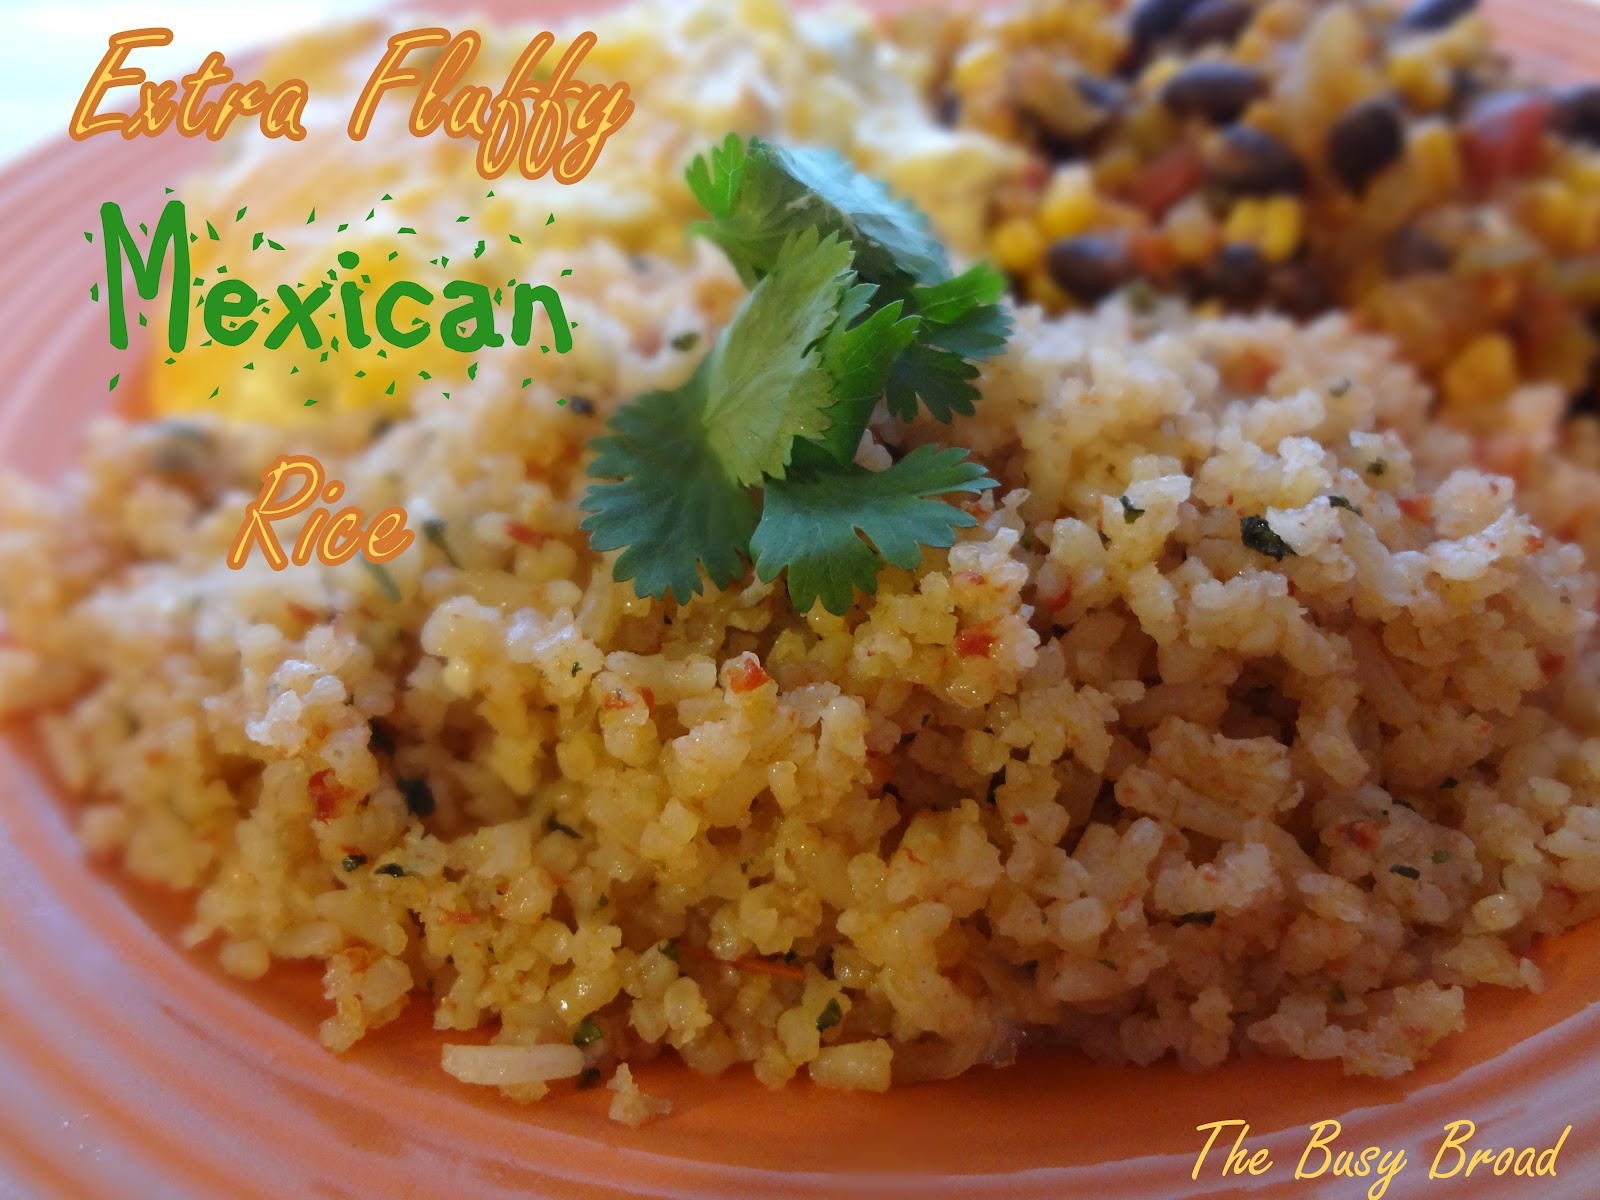 My Mexican husband gives his stamp of approval on this dish! Pretty ...